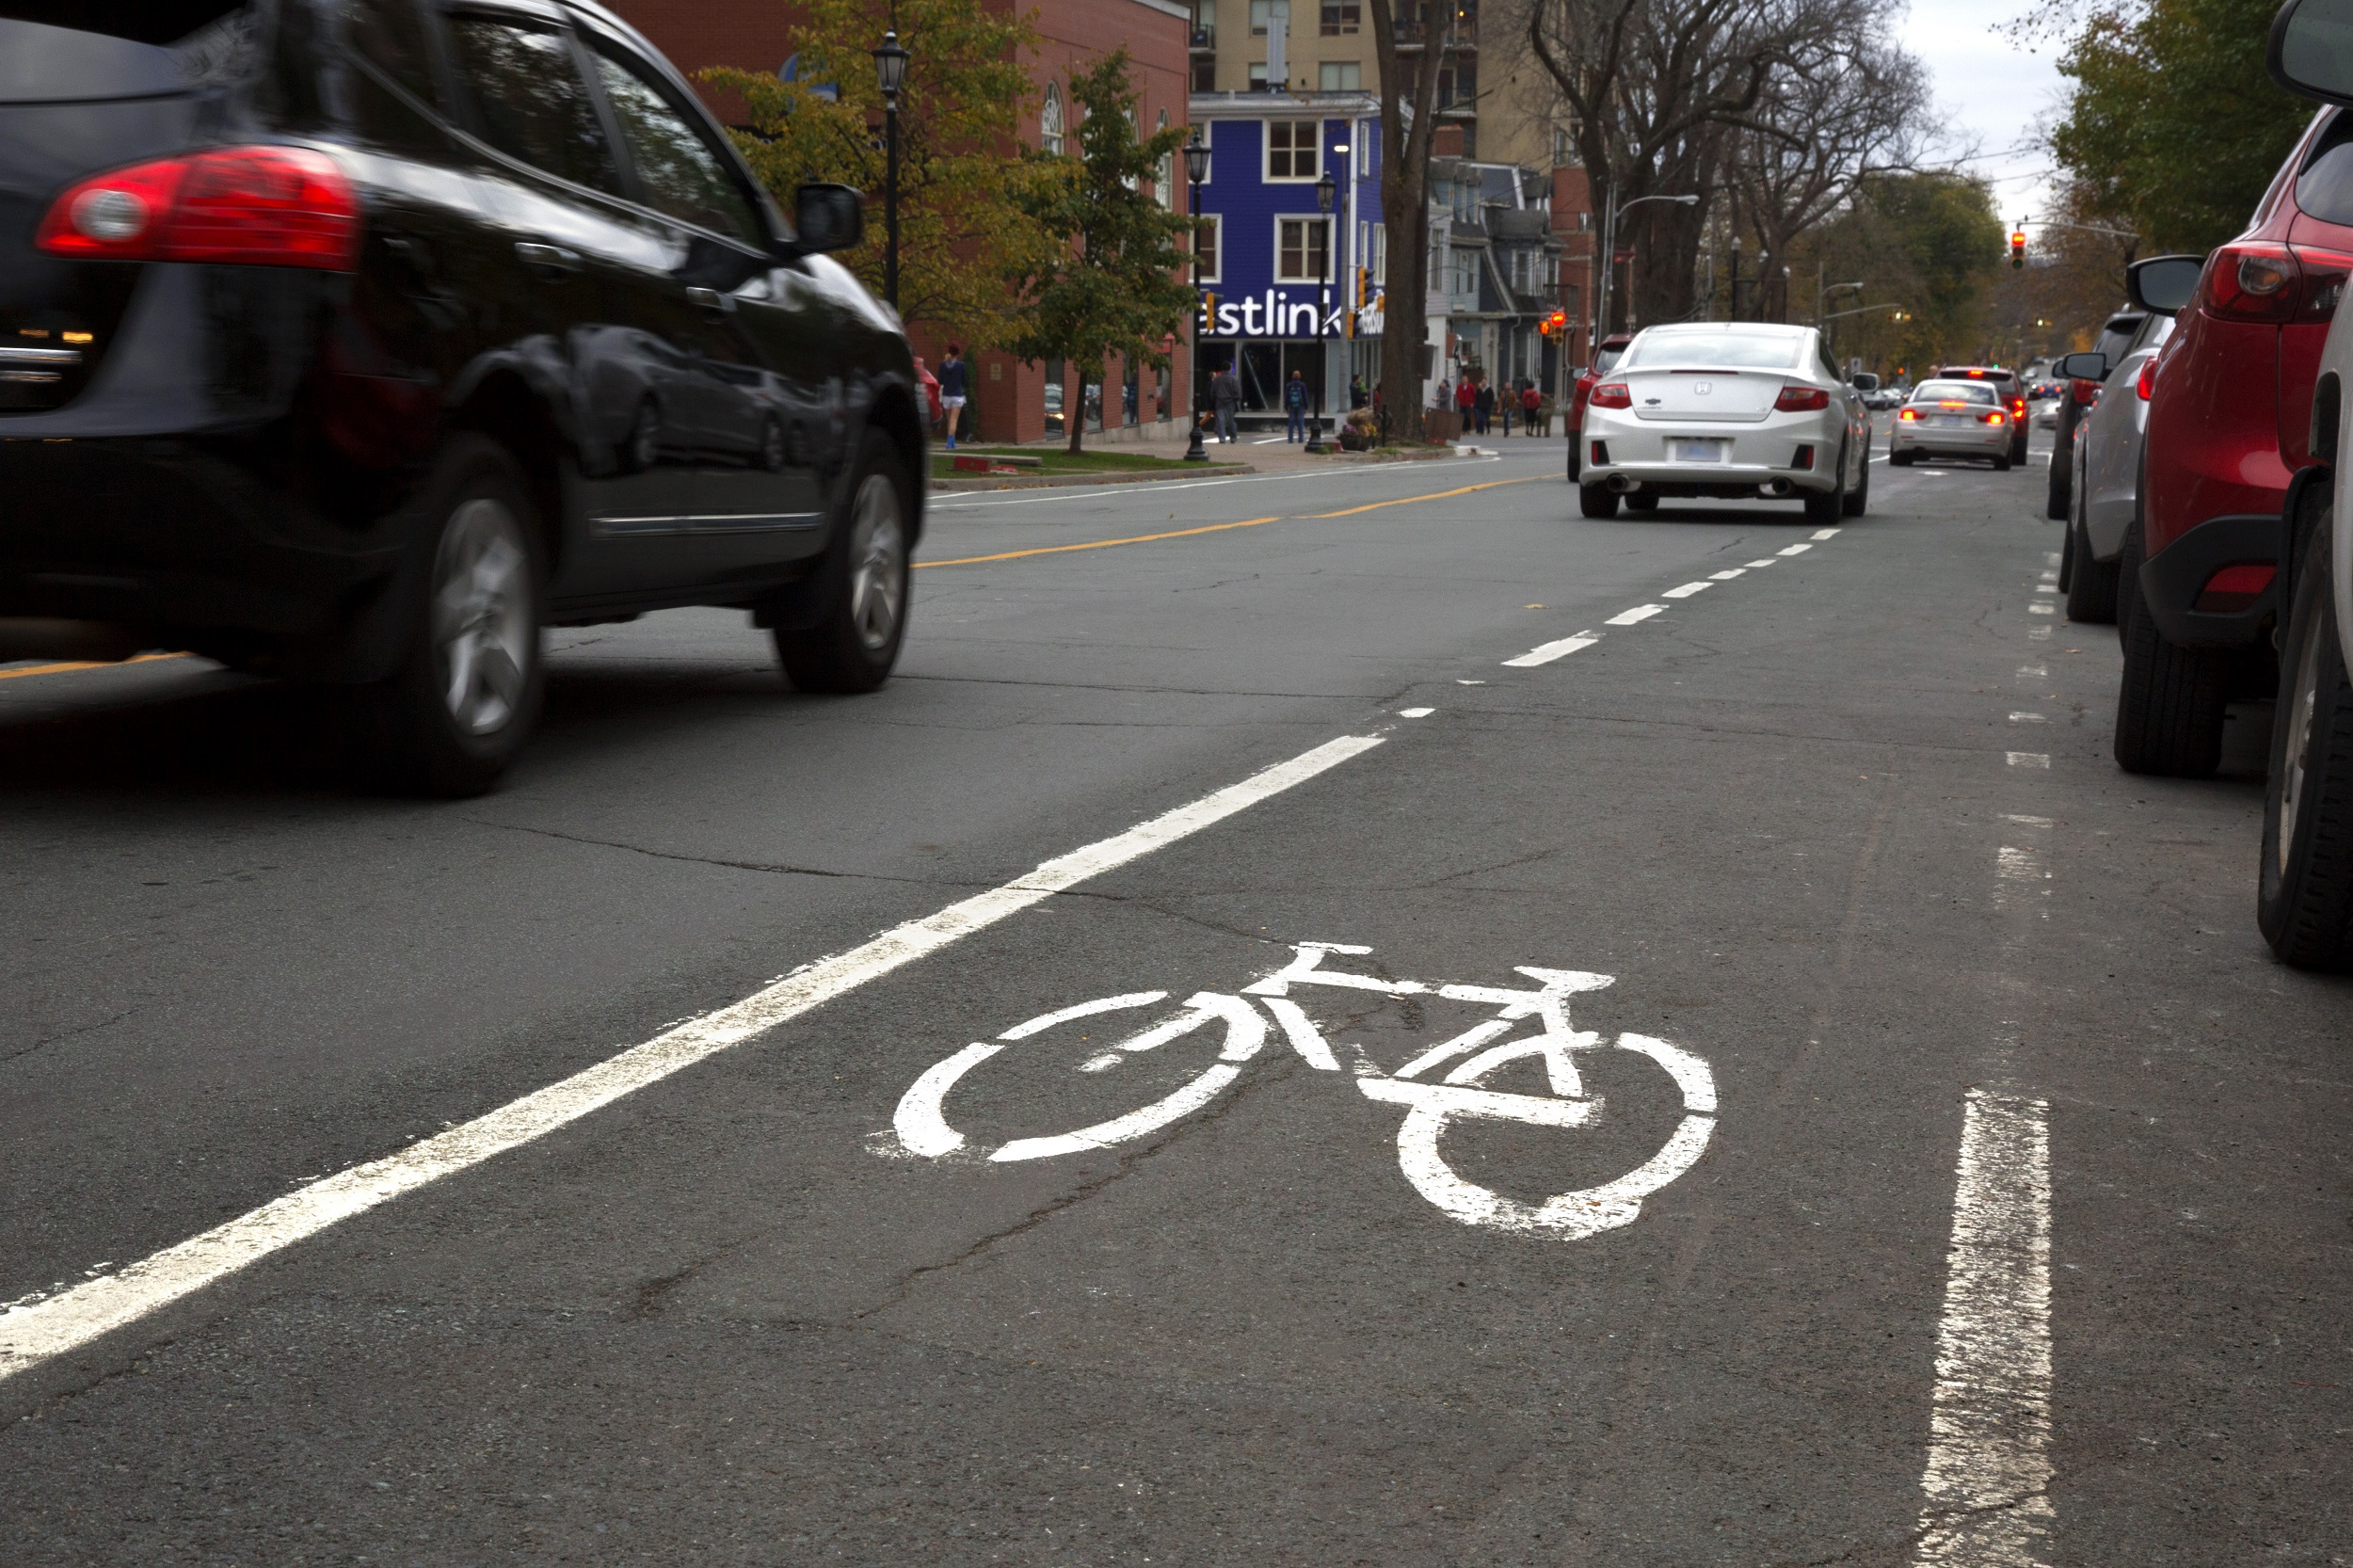 South Park Street with traffic and a newly painted bike lane